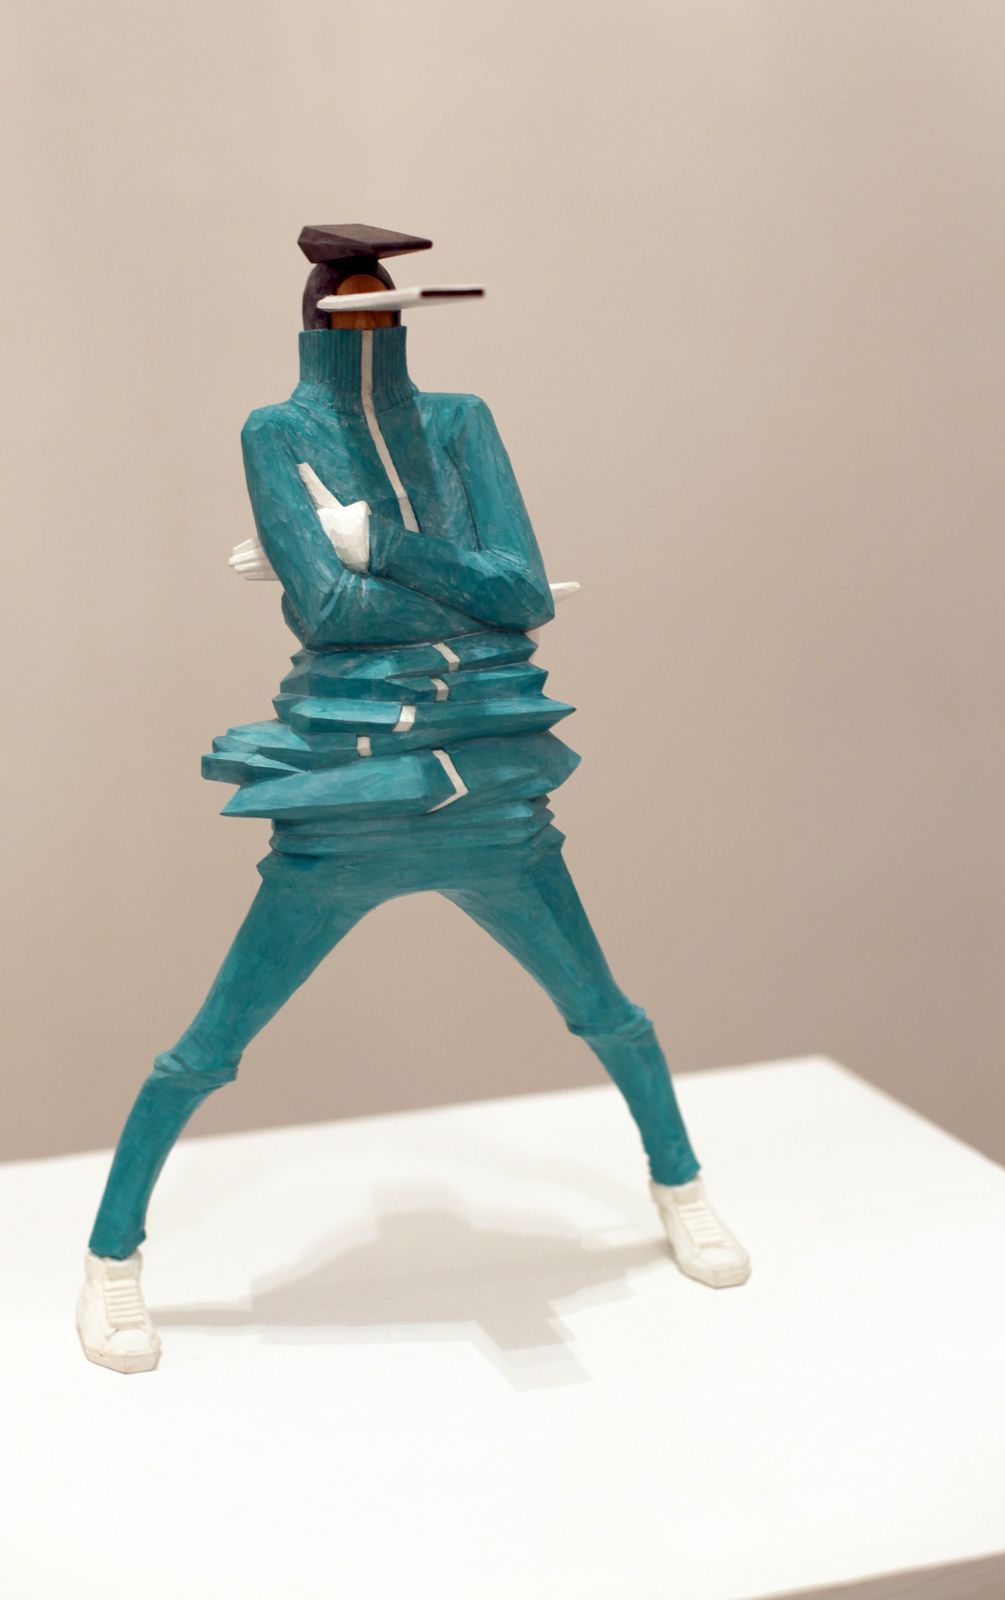 Sculpture de Taku Obata , 2015 - Courtesy Galerie Openspace © Photo Éric Simon